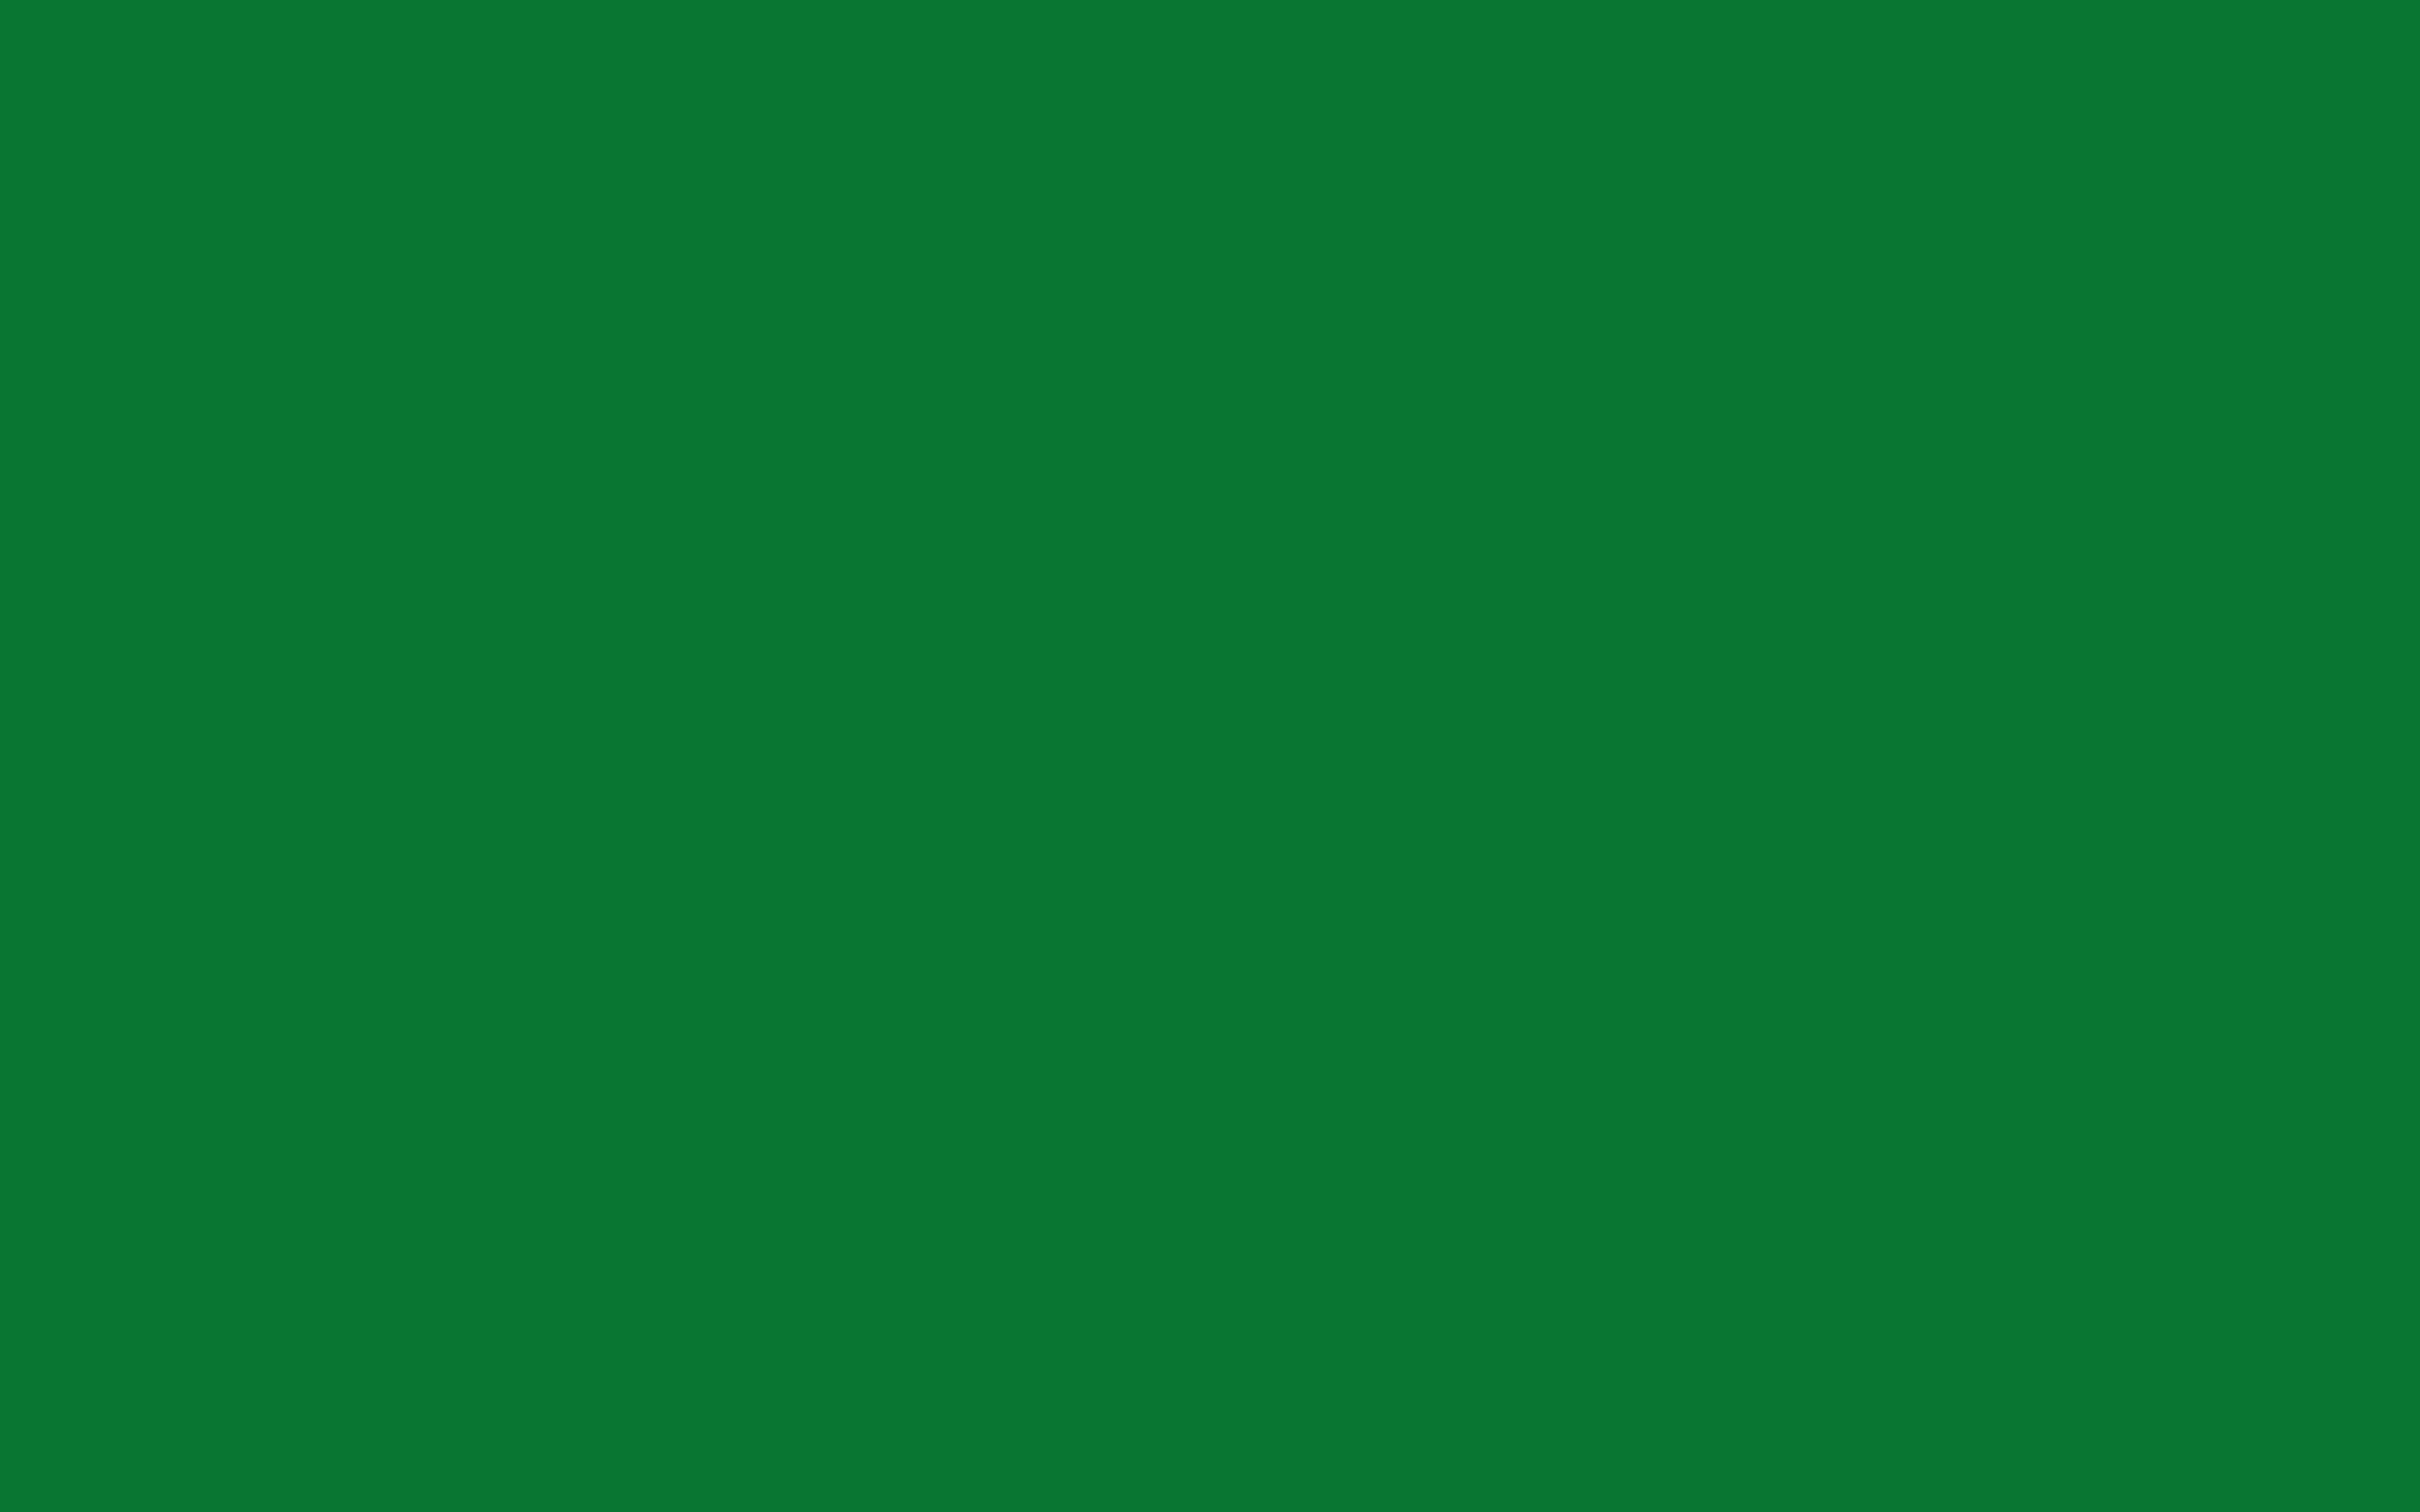 2880x1800 La Salle Green Solid Color Background